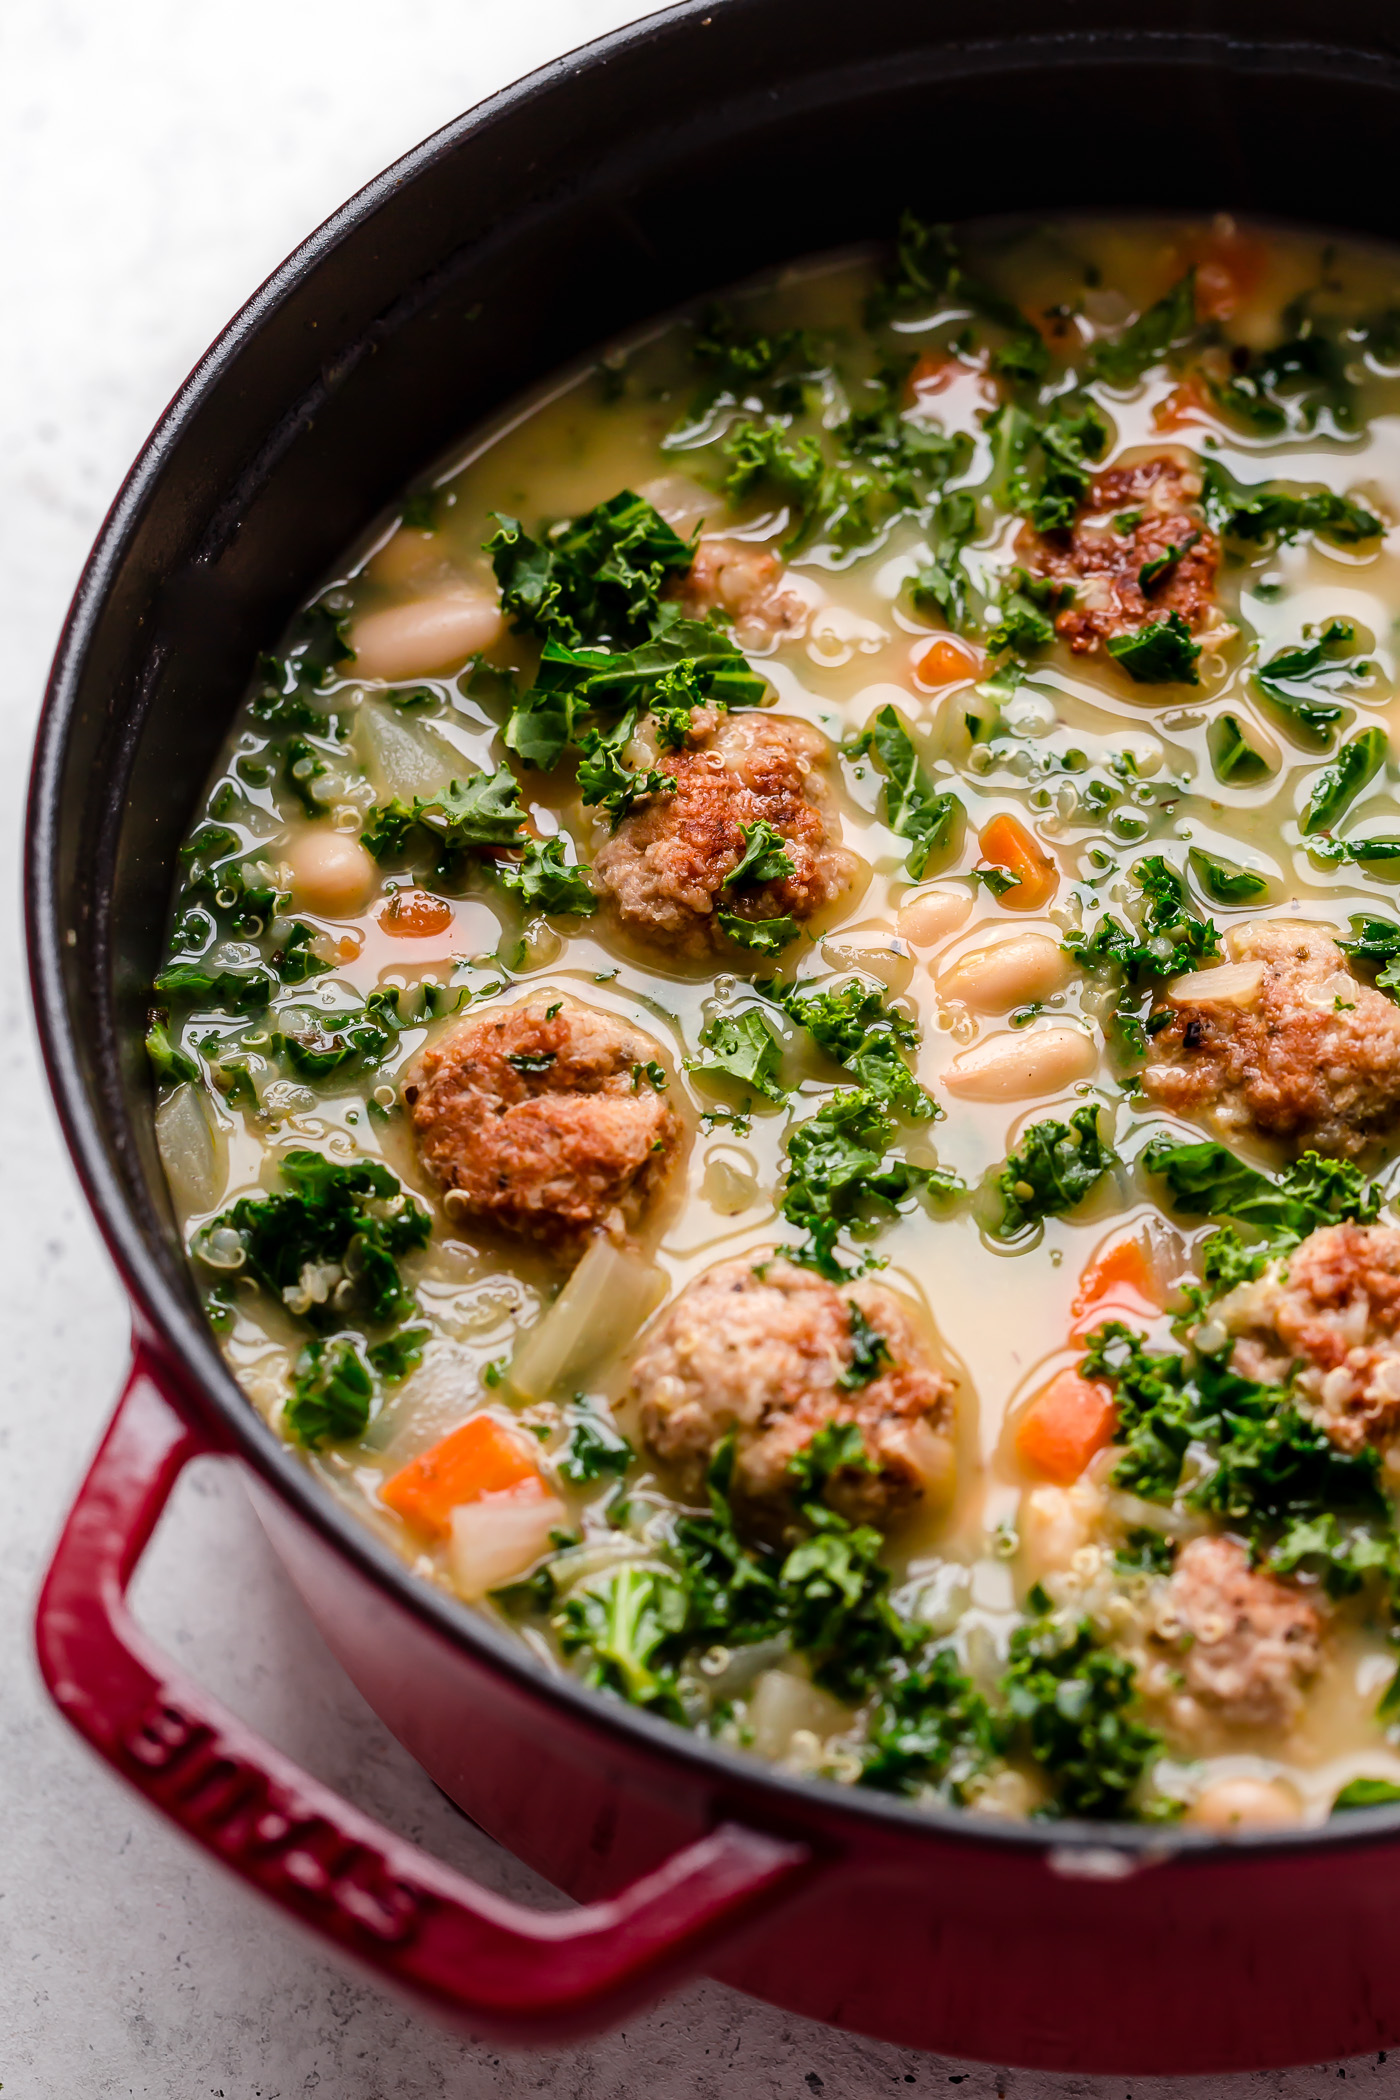 a healthy italian wedding soup recipe, made with tender chicken meatballs, quinoa, kale & cannellini beans. this lightened-up italian wedding soup gets an extra punch of flavor from lemon juice & lots of pesto, making it a cozy & comforting soup & fresh easy weeknight dinner all at once! #playswellwithbutter #italianweddingsoup #italianweddingsouprecipe #easyitalianweddingsoup #chickenmeatballsoup #chickenmeatballs #souprecipes #comfortfood #comfortfooddinners #soup #italianrecipes #italiansoup